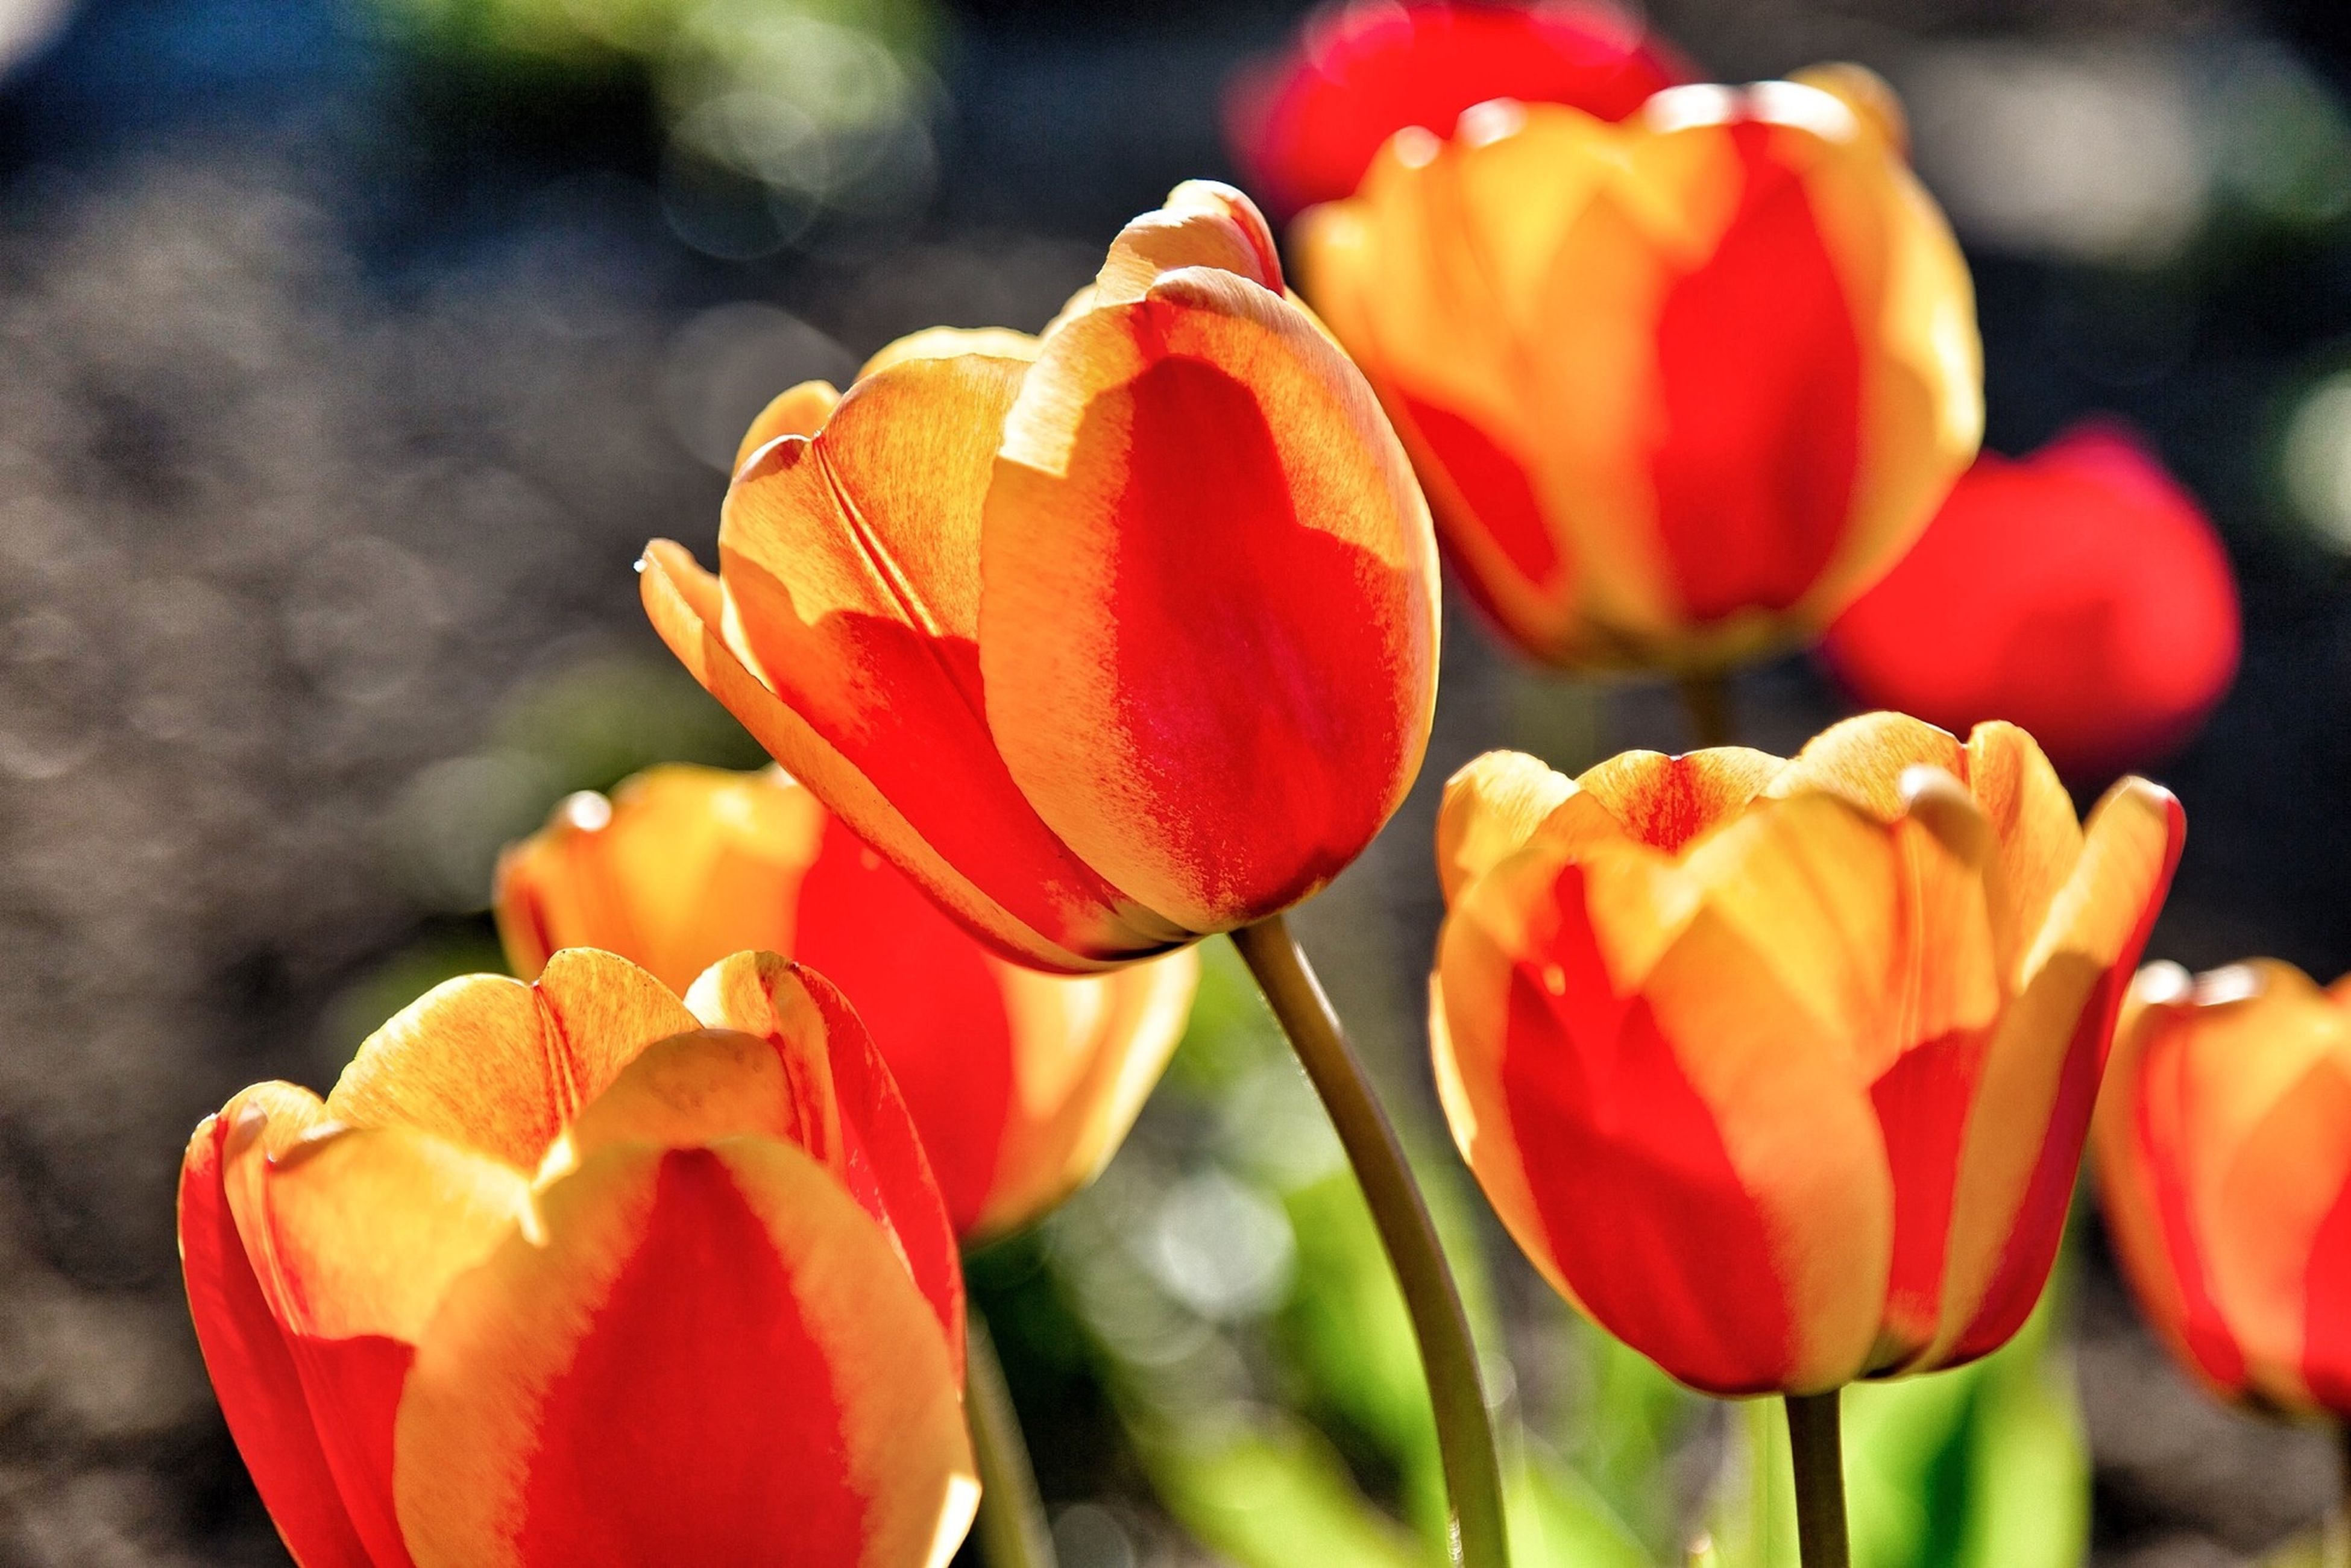 flower, petal, freshness, fragility, flower head, growth, focus on foreground, beauty in nature, tulip, close-up, red, blooming, nature, plant, bud, orange color, stem, field, in bloom, selective focus